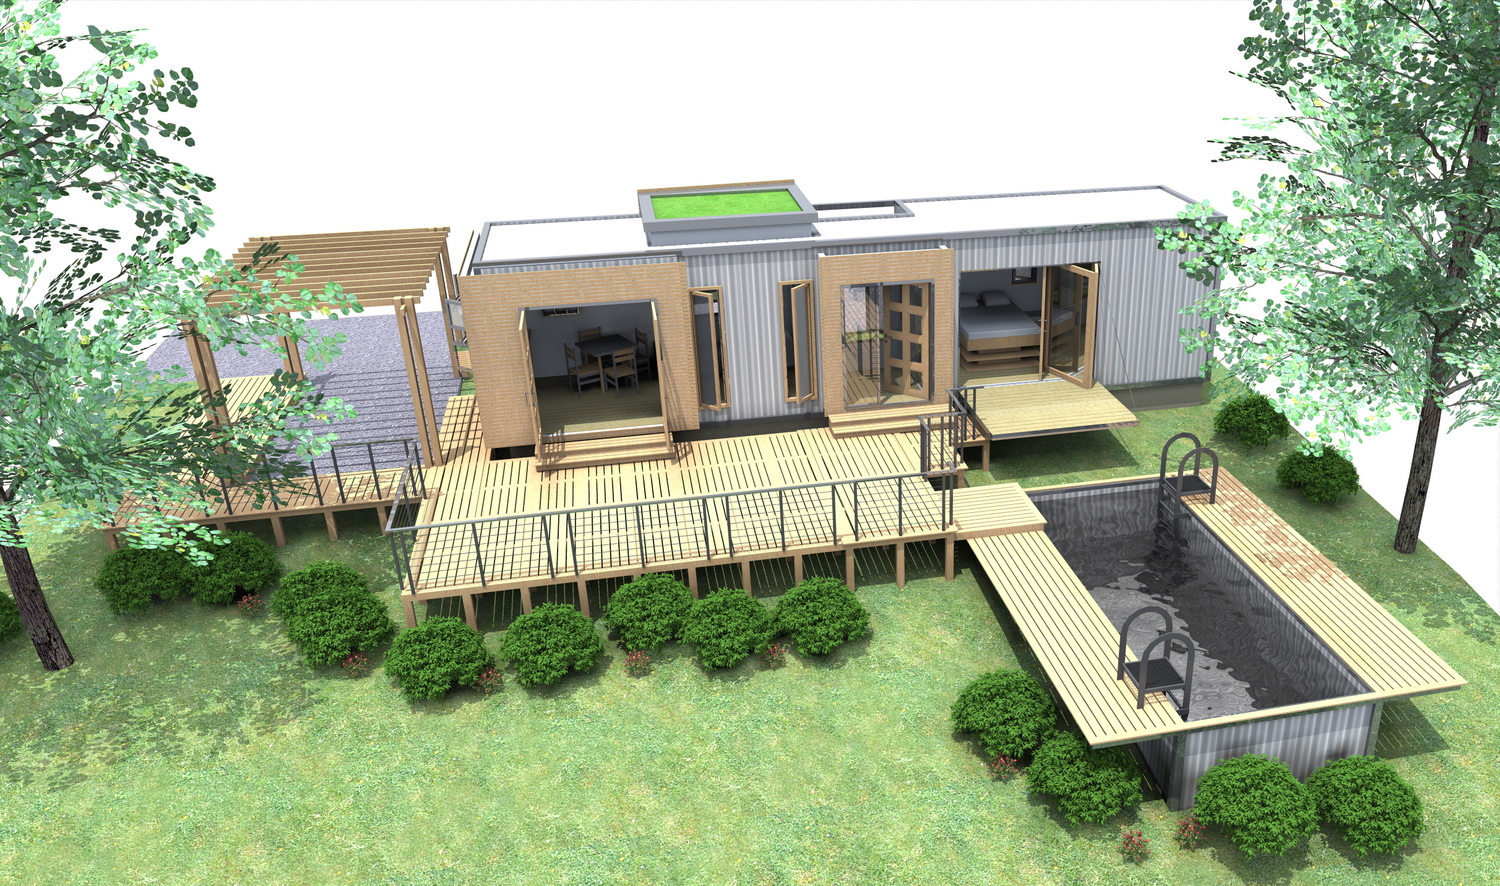 Shipping container homes june 2013 for Shipping container home building plans